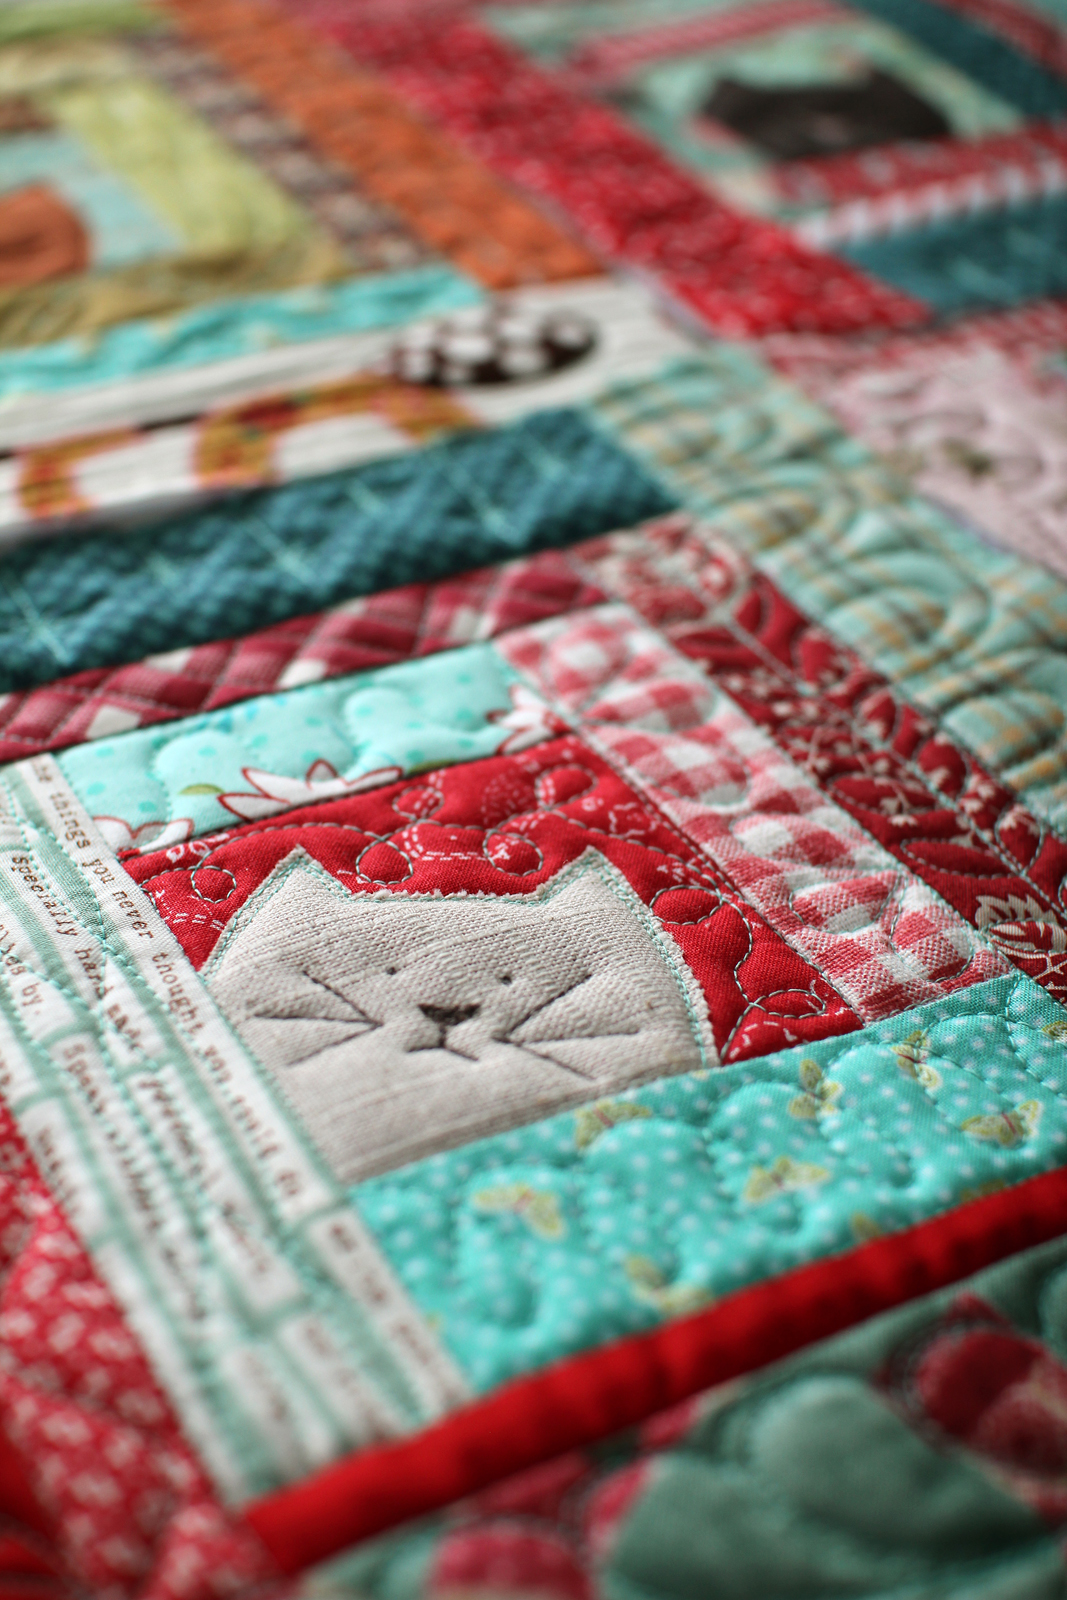 quilt projects You'll find lots of easy quilt patterns that are designed especially for beginners, along with projects that are more challenging with a wide variety of free quilt patterns to choose from, browsing our gallery is sure to be inspiring.